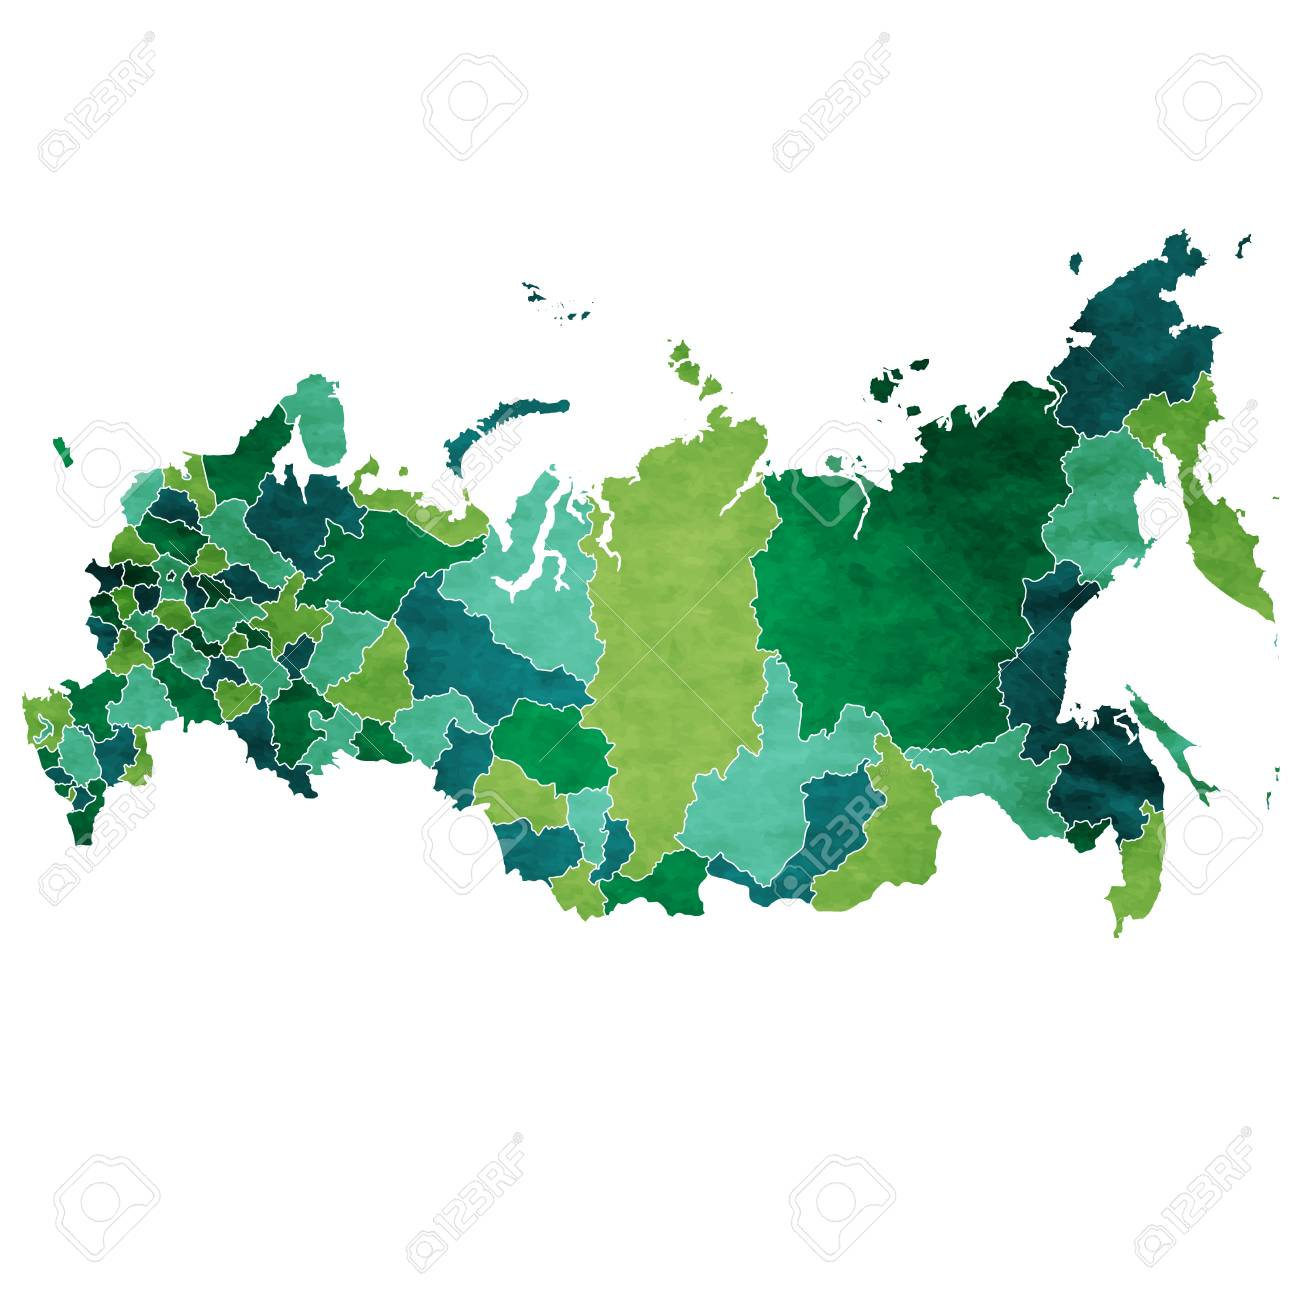 Russia Global Map.Russia World Map Country Icon Royalty Free Cliparts Vectors And